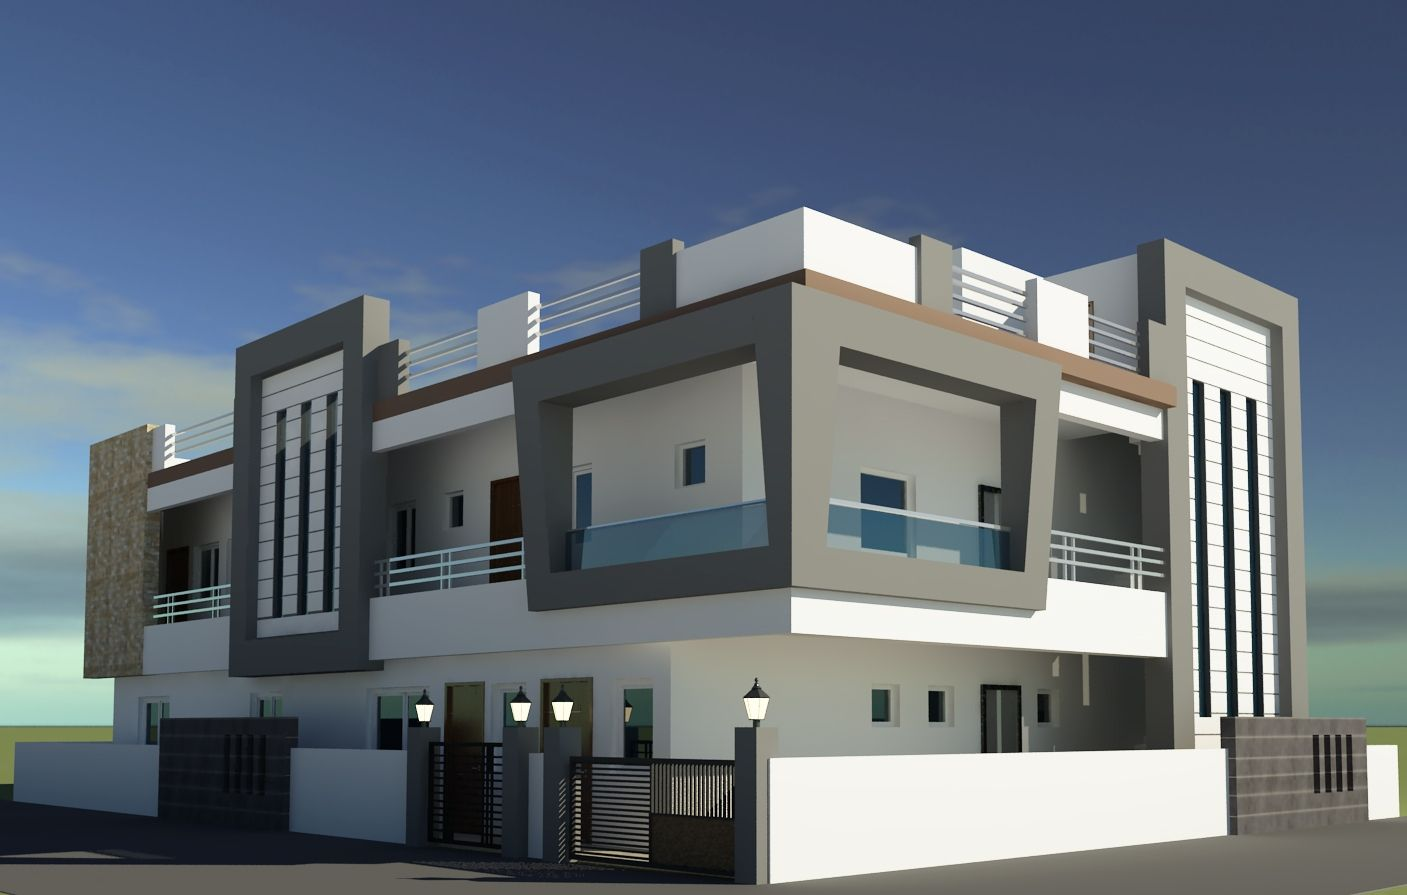 3ddesign We Have Developed 3d Rendering For A Variety Of